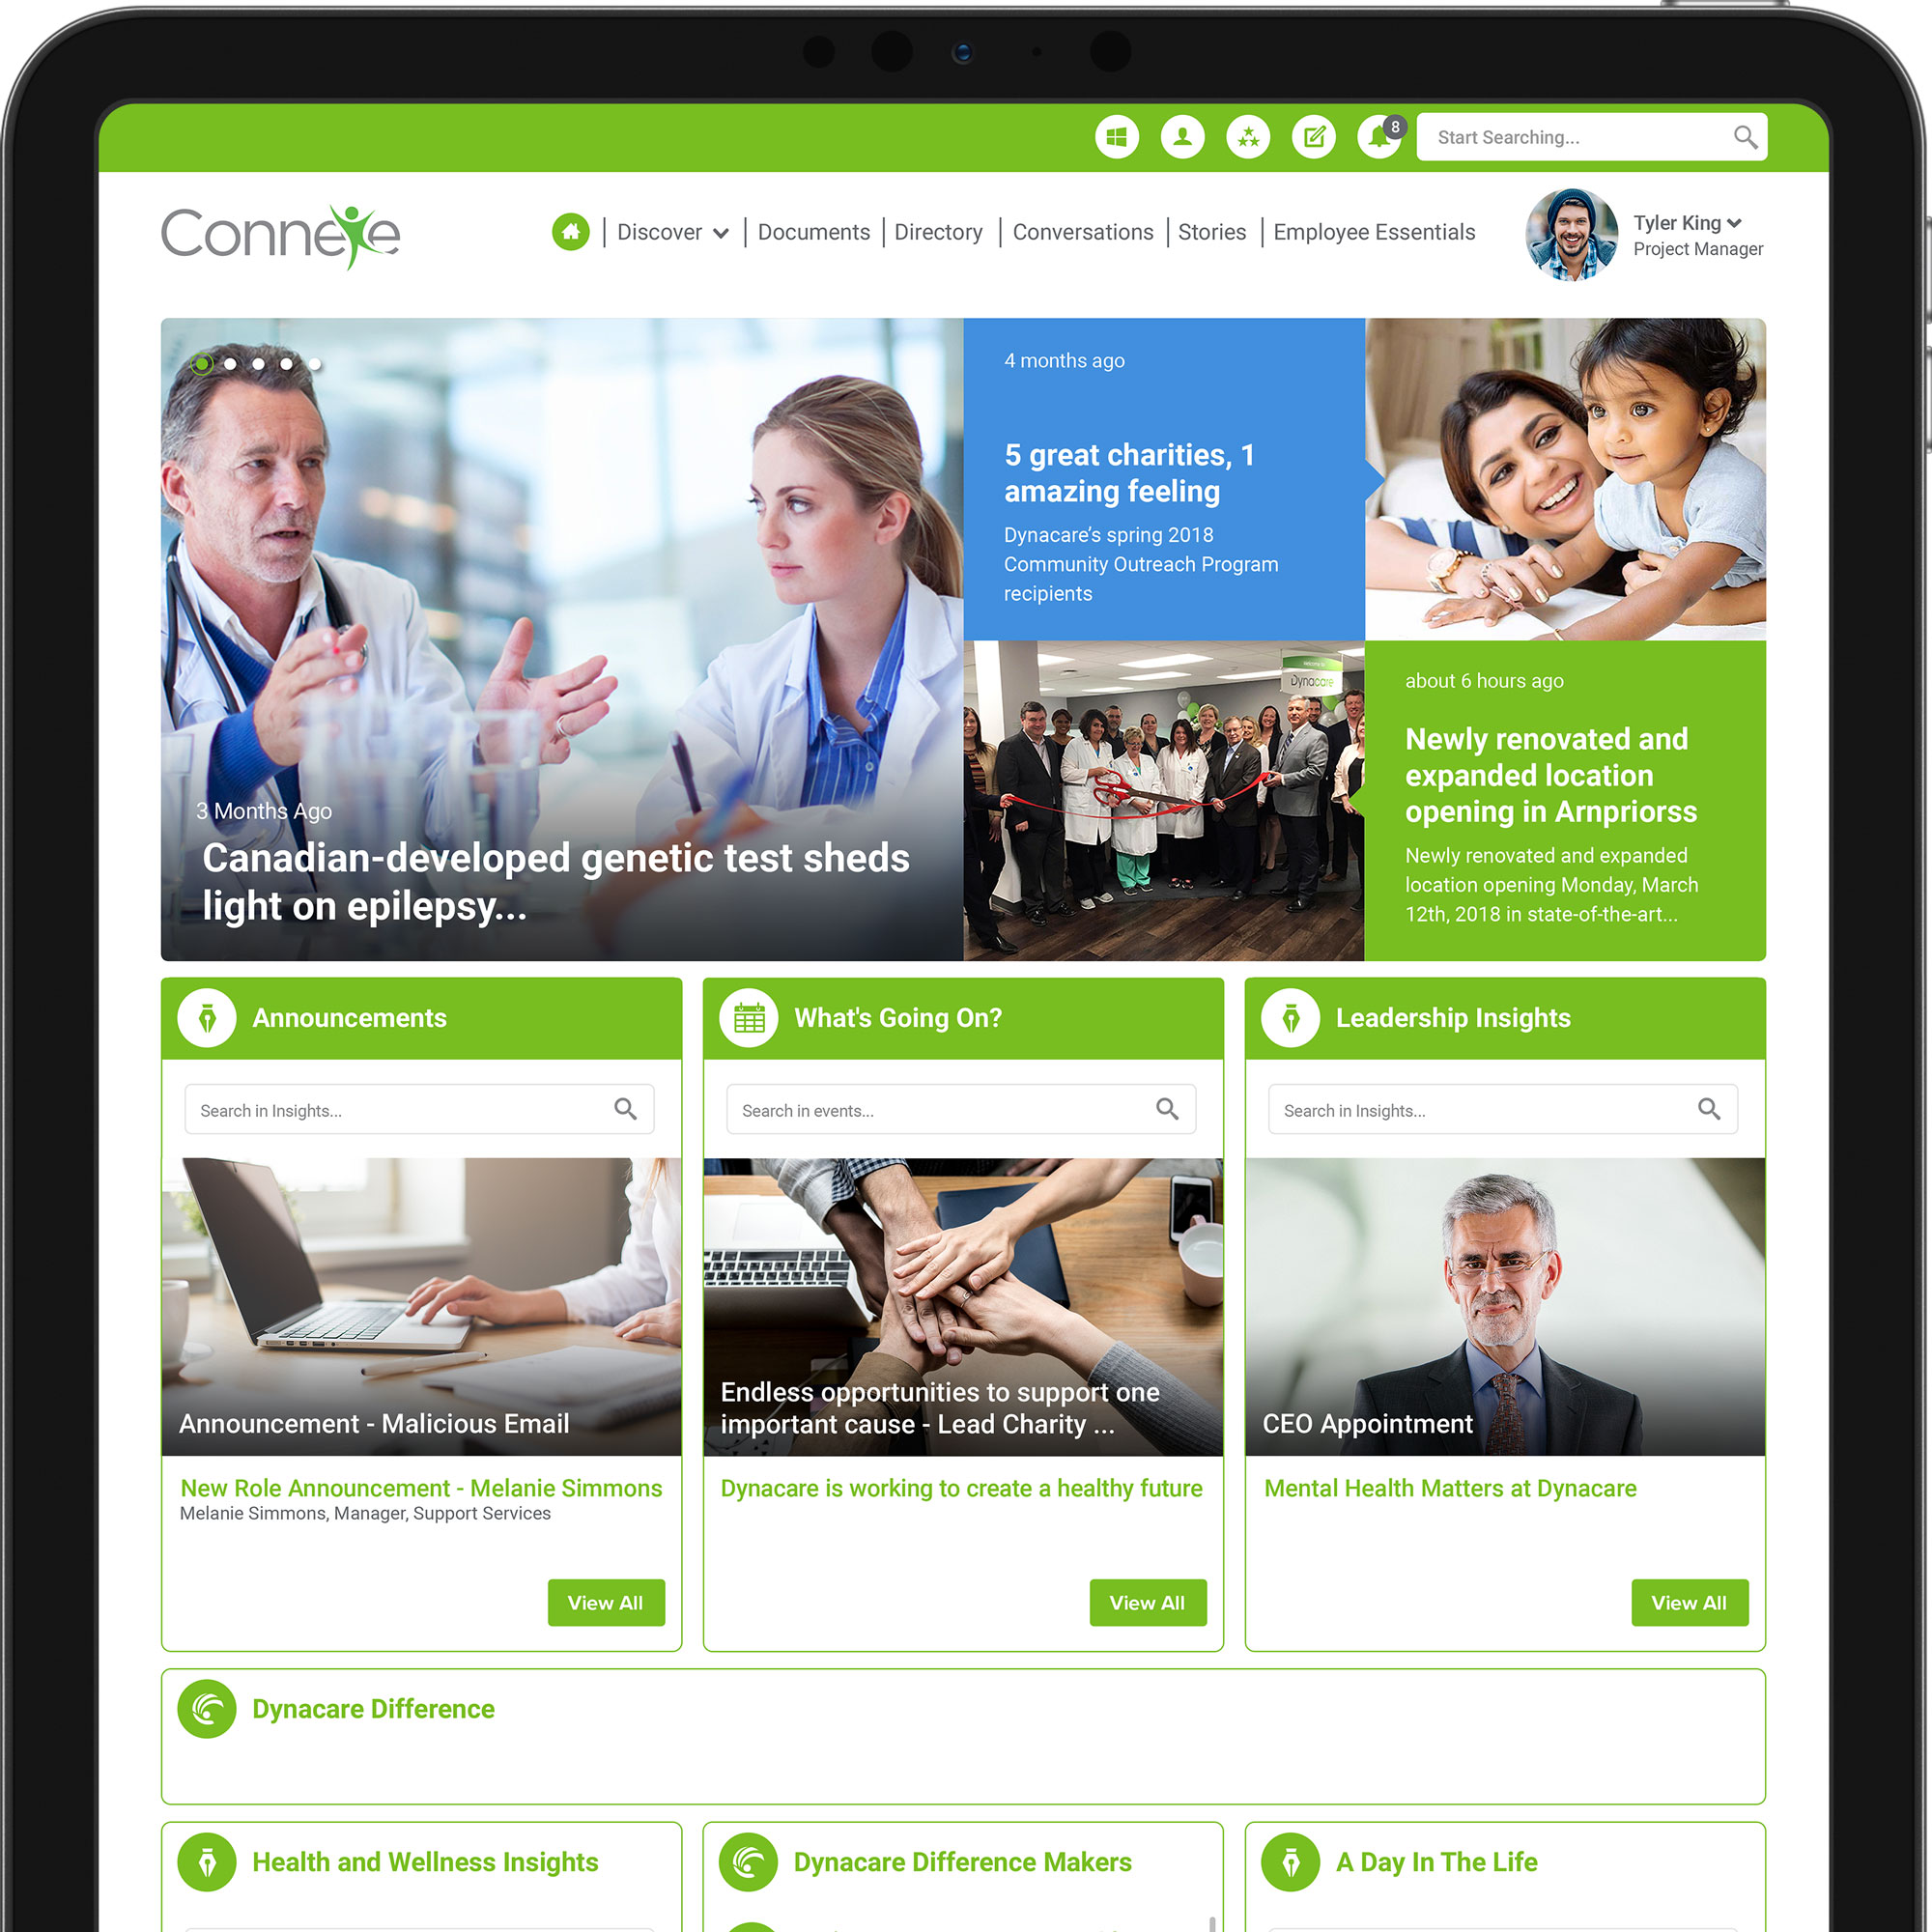 Dynacare's intranet homepage on a tablet